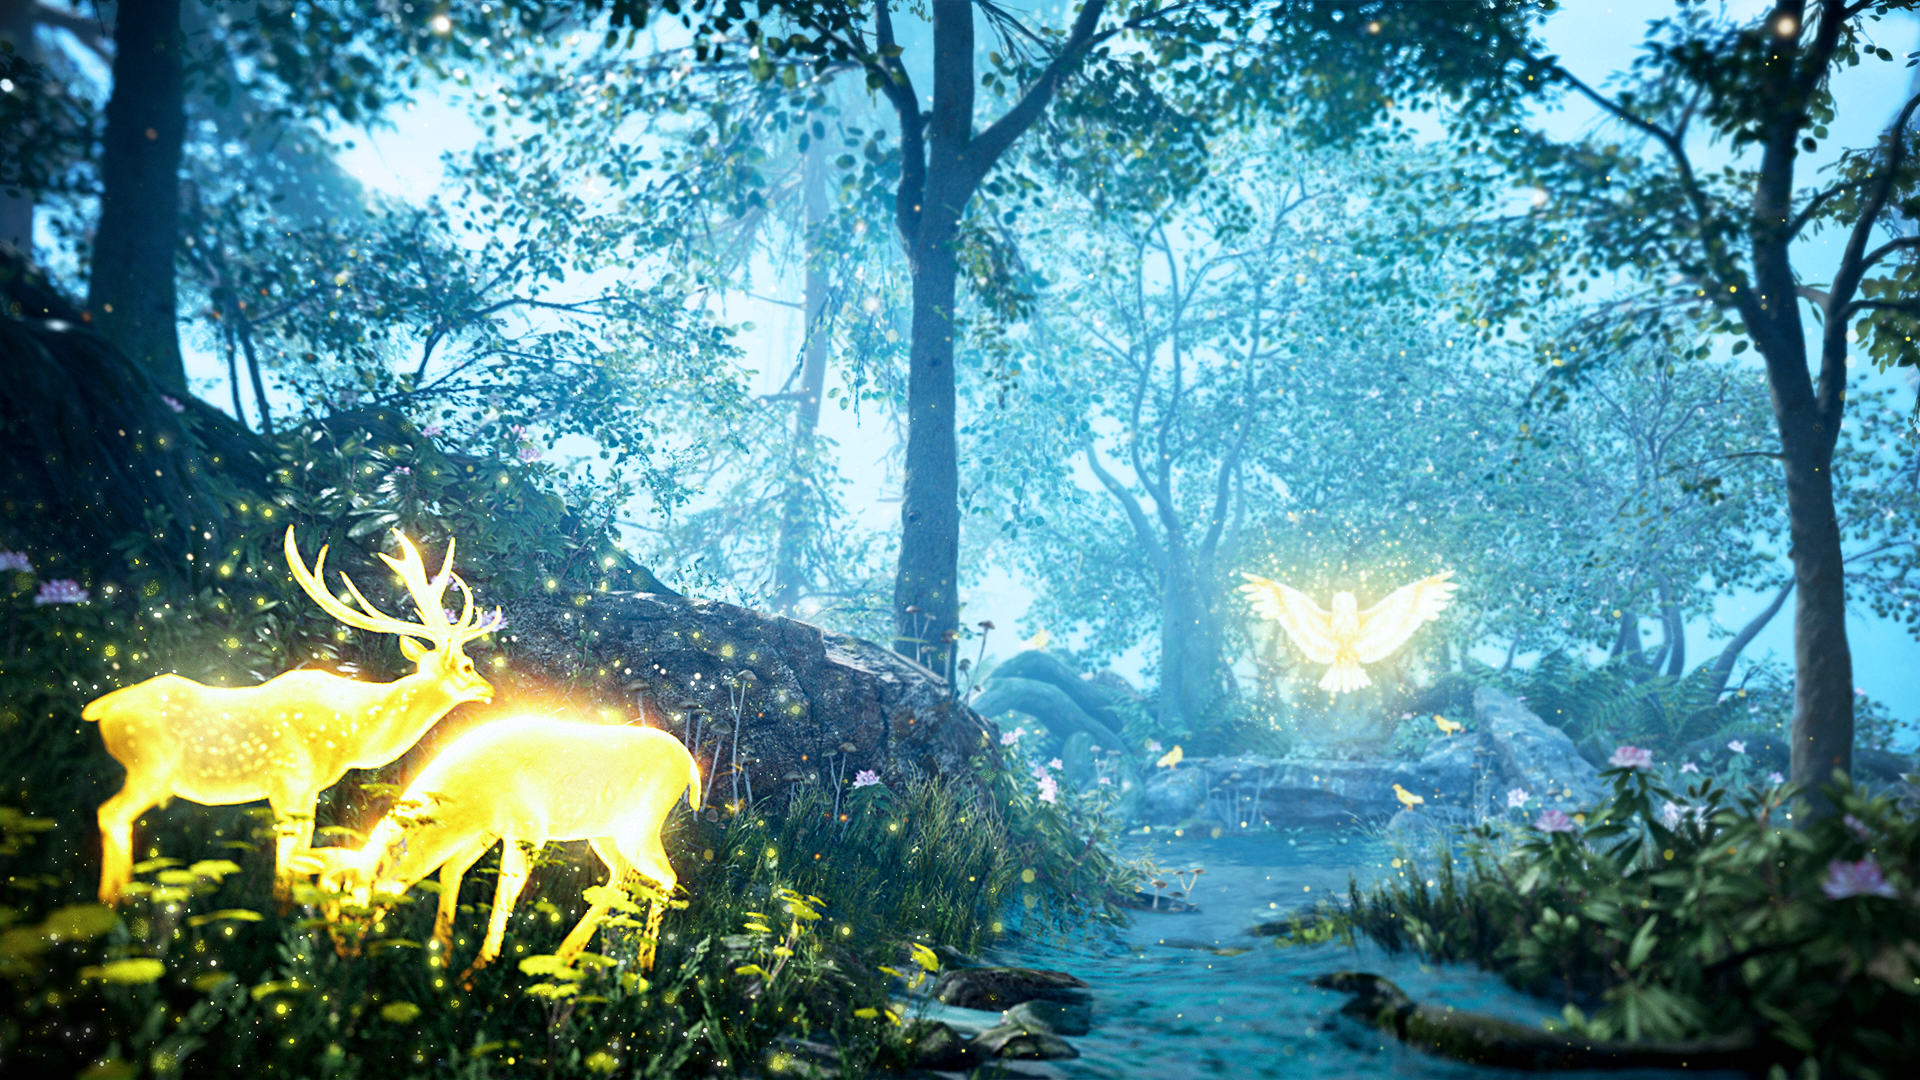 An Exclusive Look At Far Cry Primal Ahead Of Release Day FCP 03 Owl Vision Screenshots PREVIEW PR 160126 6pm CET 1453716680